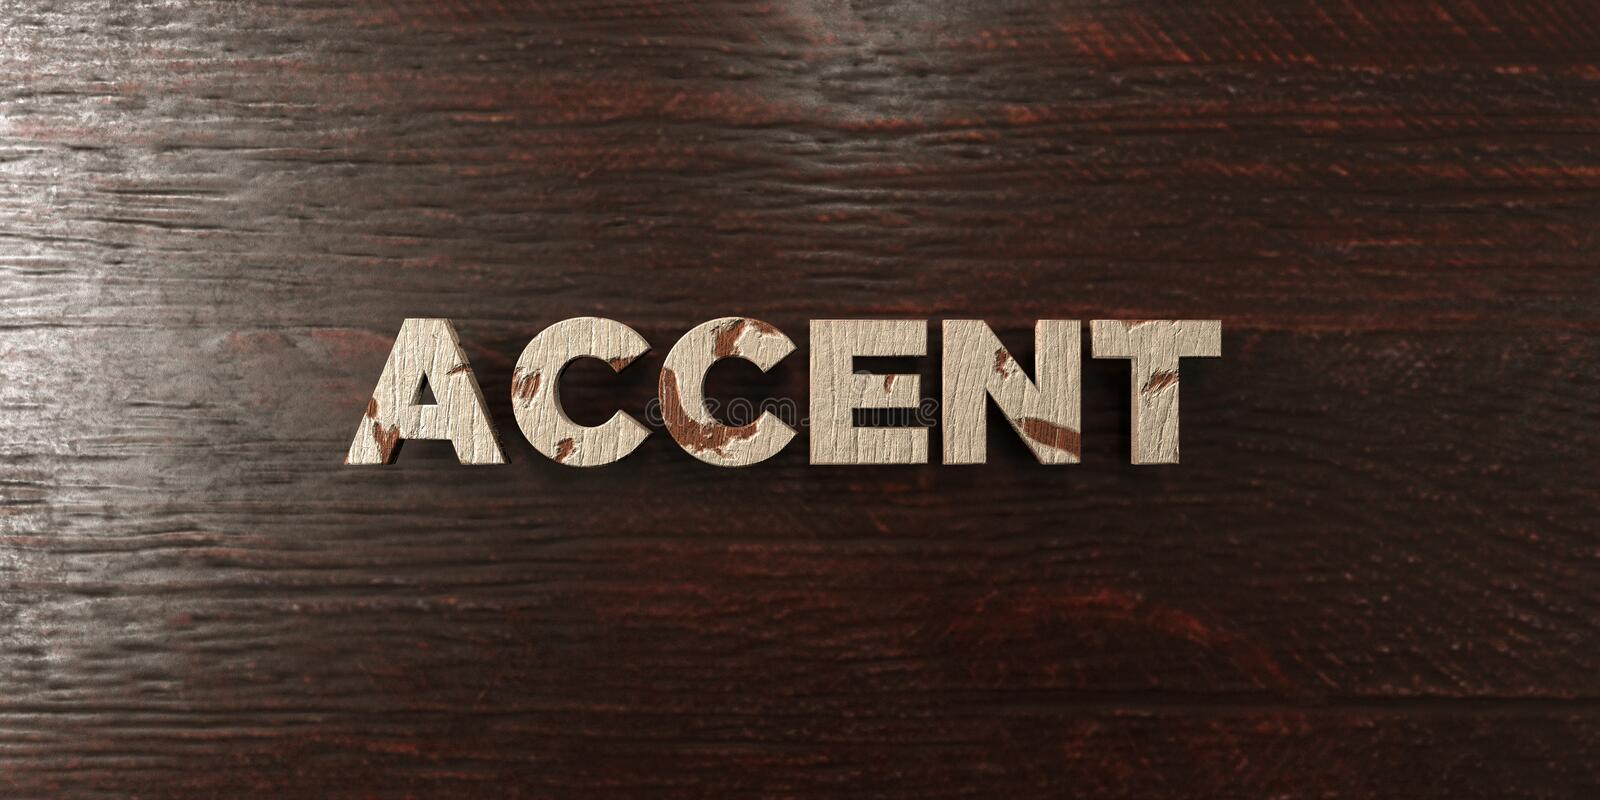 Accent - titre en bois sale sur l'érable - image courante gratuite de redevance rendue par 3D illustration libre de droits